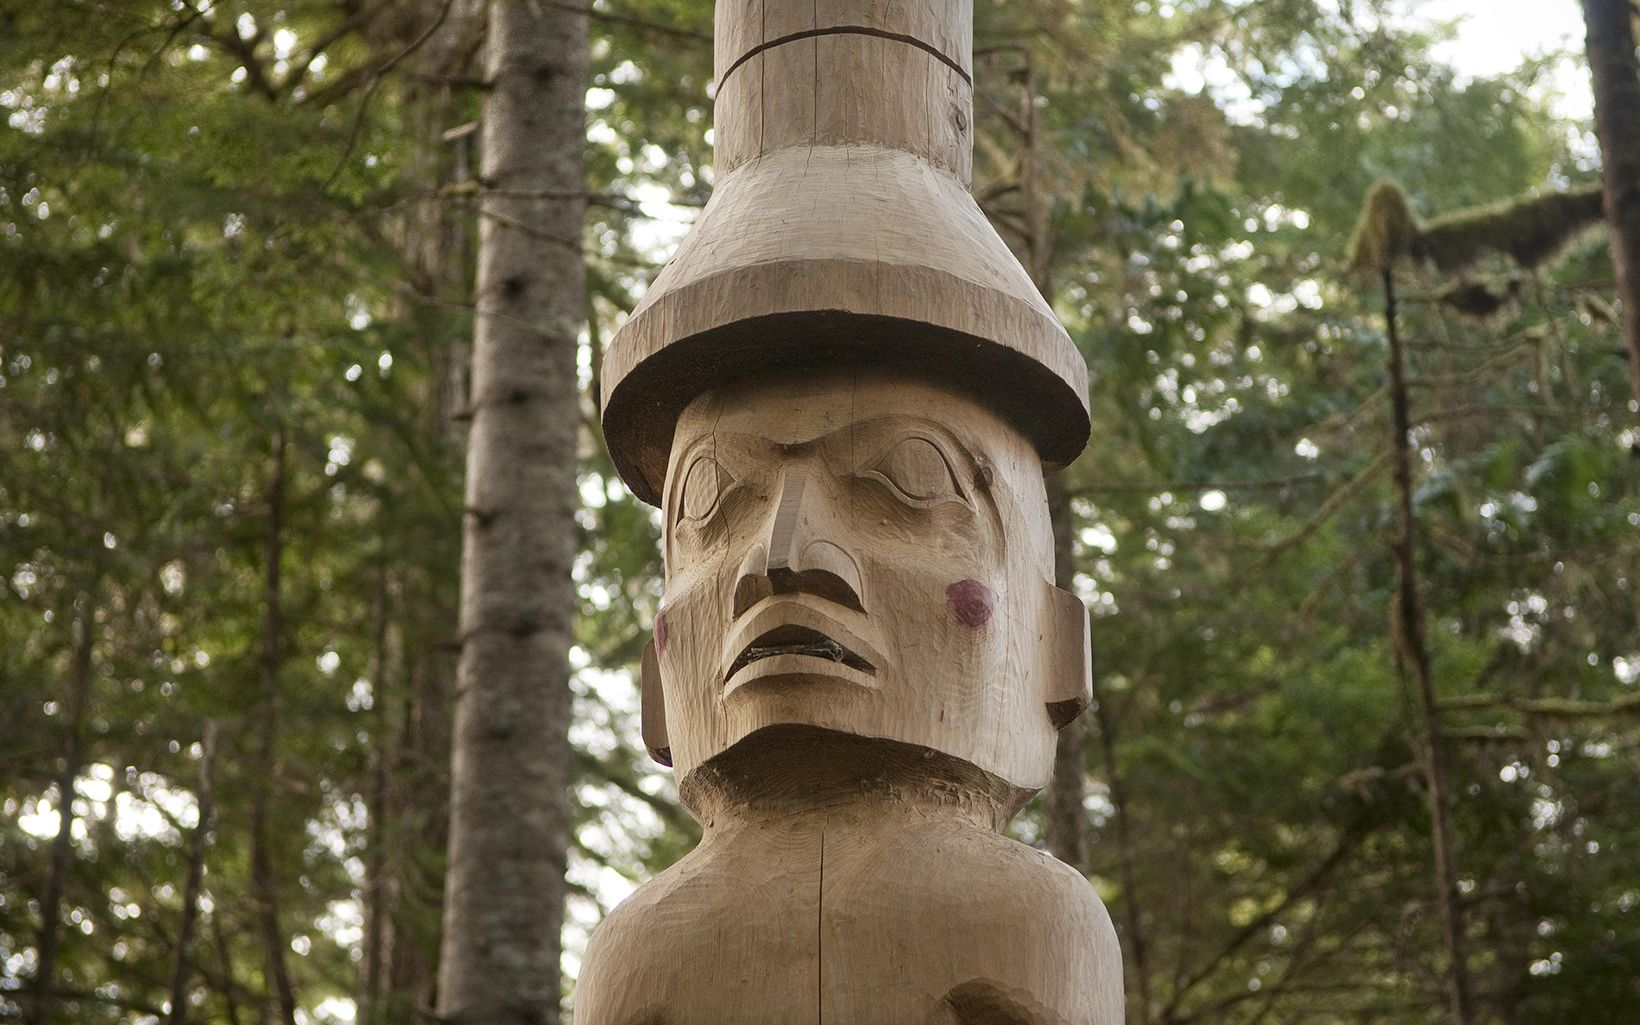 A carved mortuary pole erected by the Heiltsuk people to the memory of their late tribal elder, Thistalalh (Edward) Martin, stands on traditional Heiltsuk lands along the Koeye River in the Great Bear Rainforest of British Columbia, Canada.